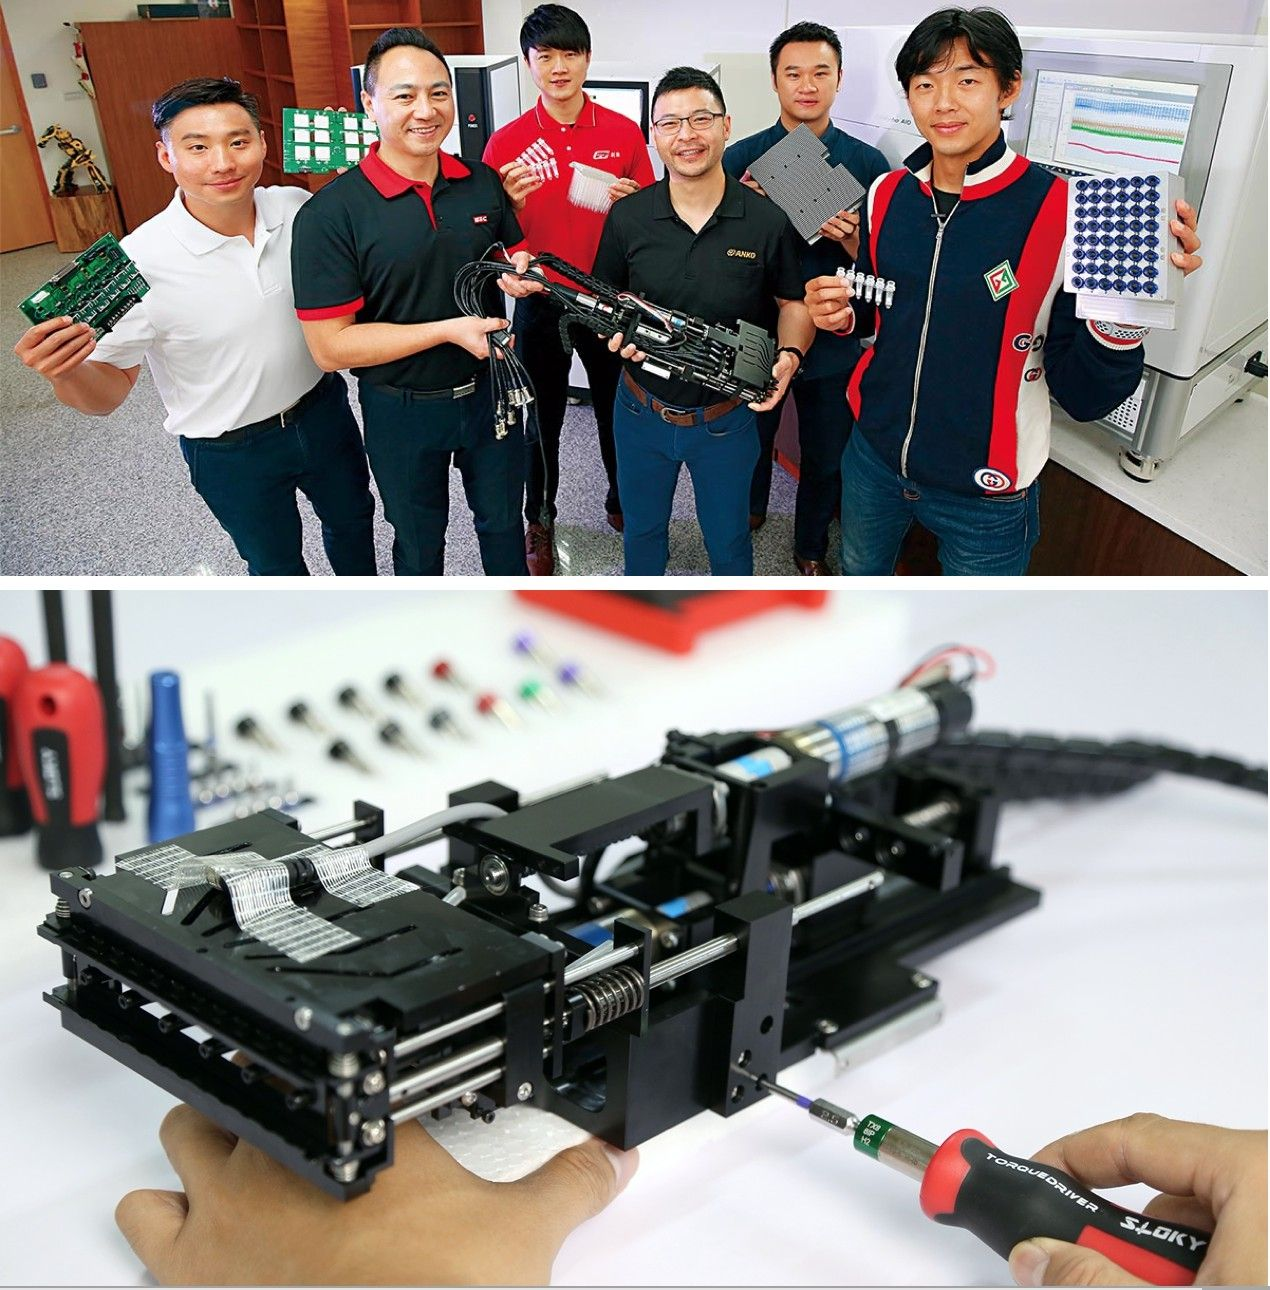 Sloky and Chienfu are very proud to be a part of Team Taiwan of second generation and able to contribute our expertise of torque control.